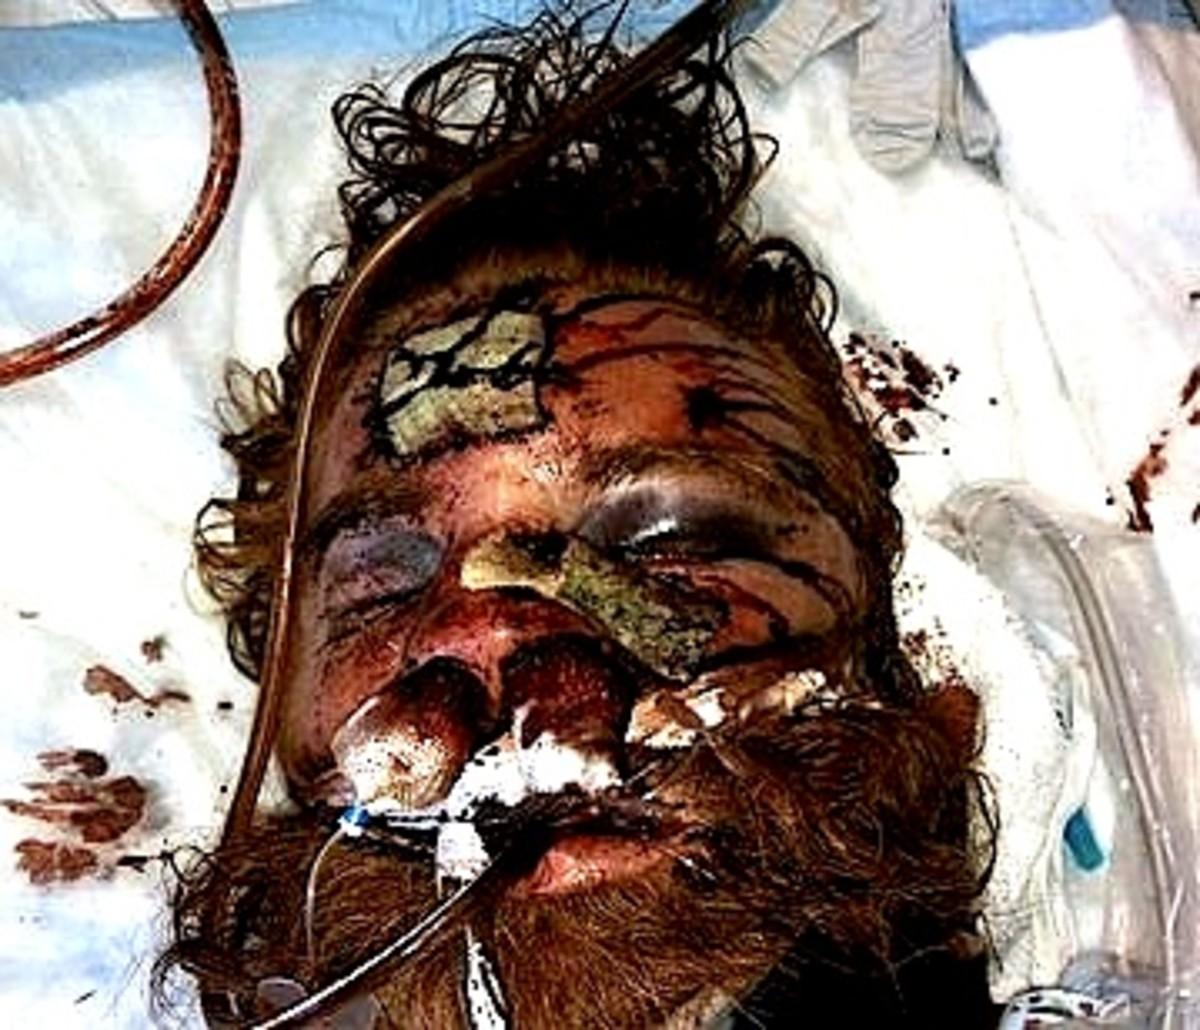 This is how Mr. Thomas looked after his beating as he lay dying in the hospital.